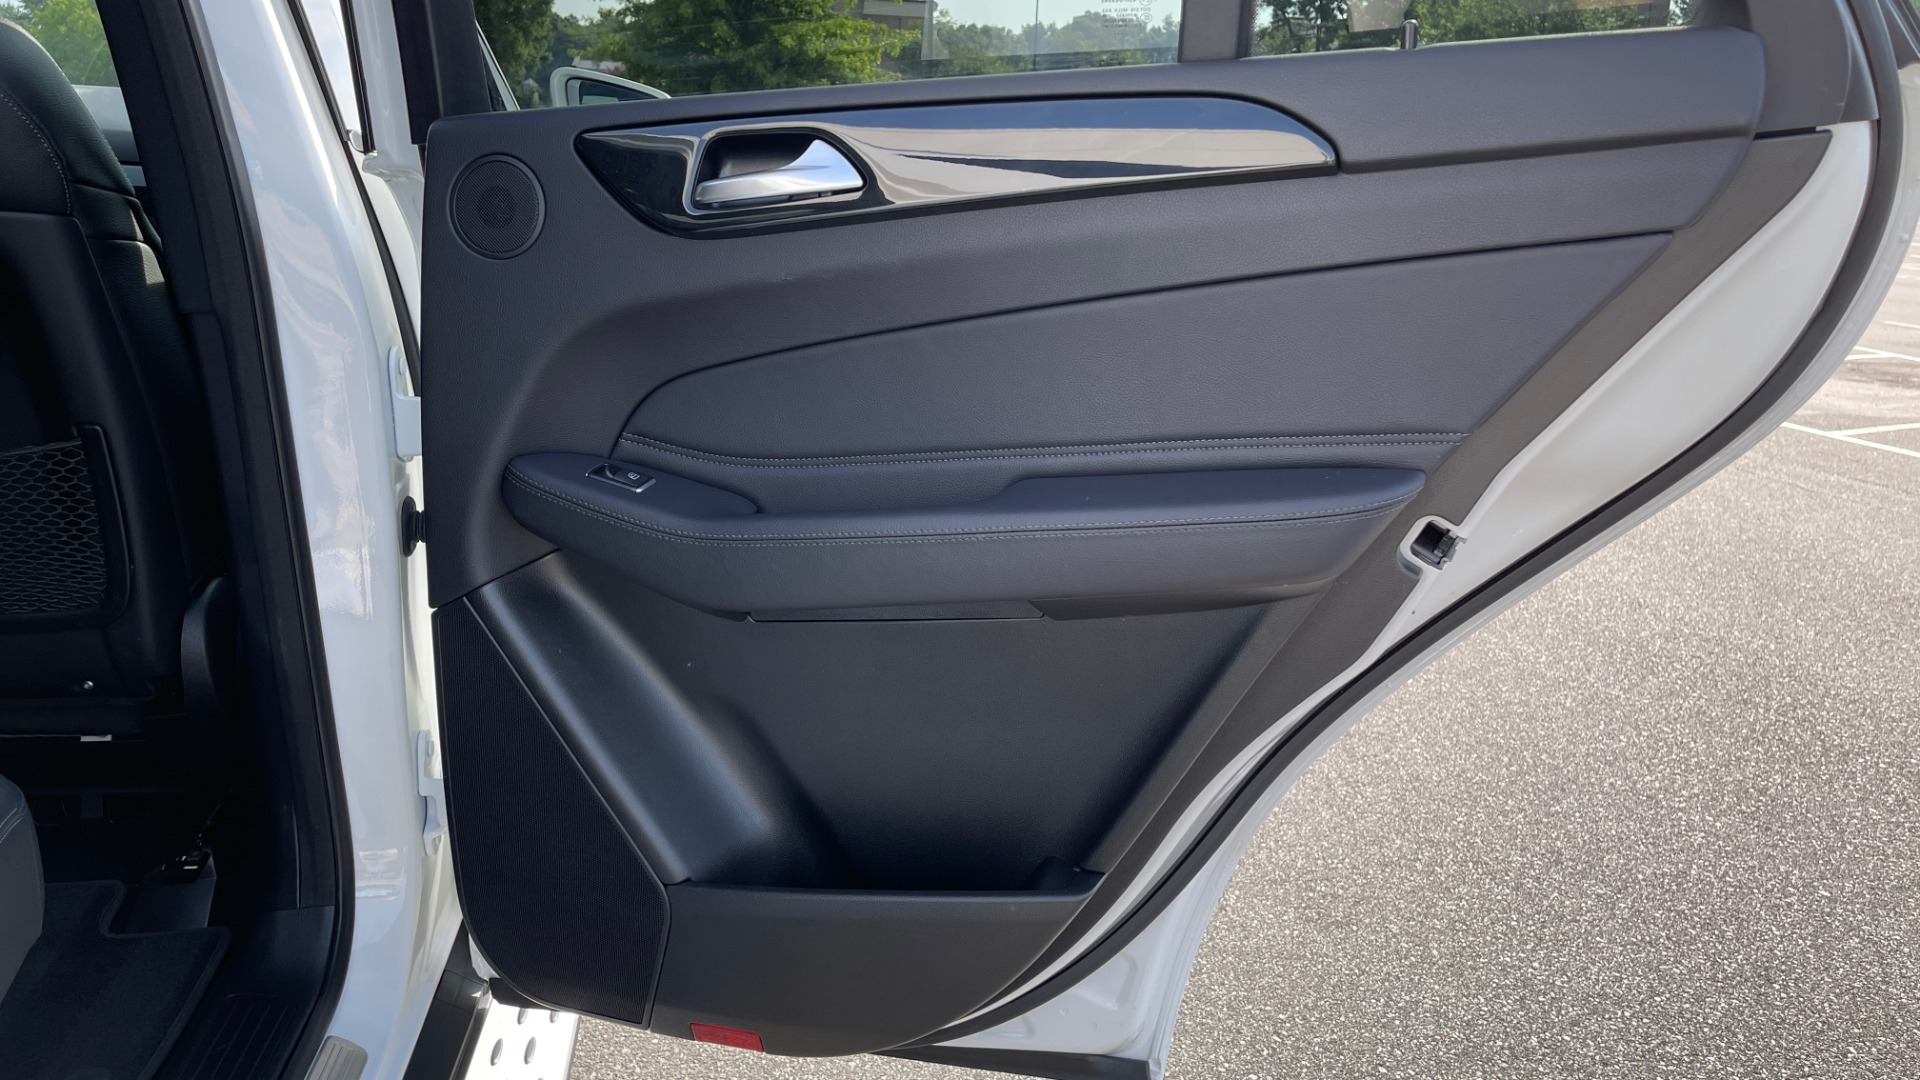 Used 2018 Mercedes-Benz GLE 350 4MATIC PREMIUM / NAV / SUNROOF / HTD STS / TRAILER HITCH / REARVIEW for sale $36,295 at Formula Imports in Charlotte NC 28227 60